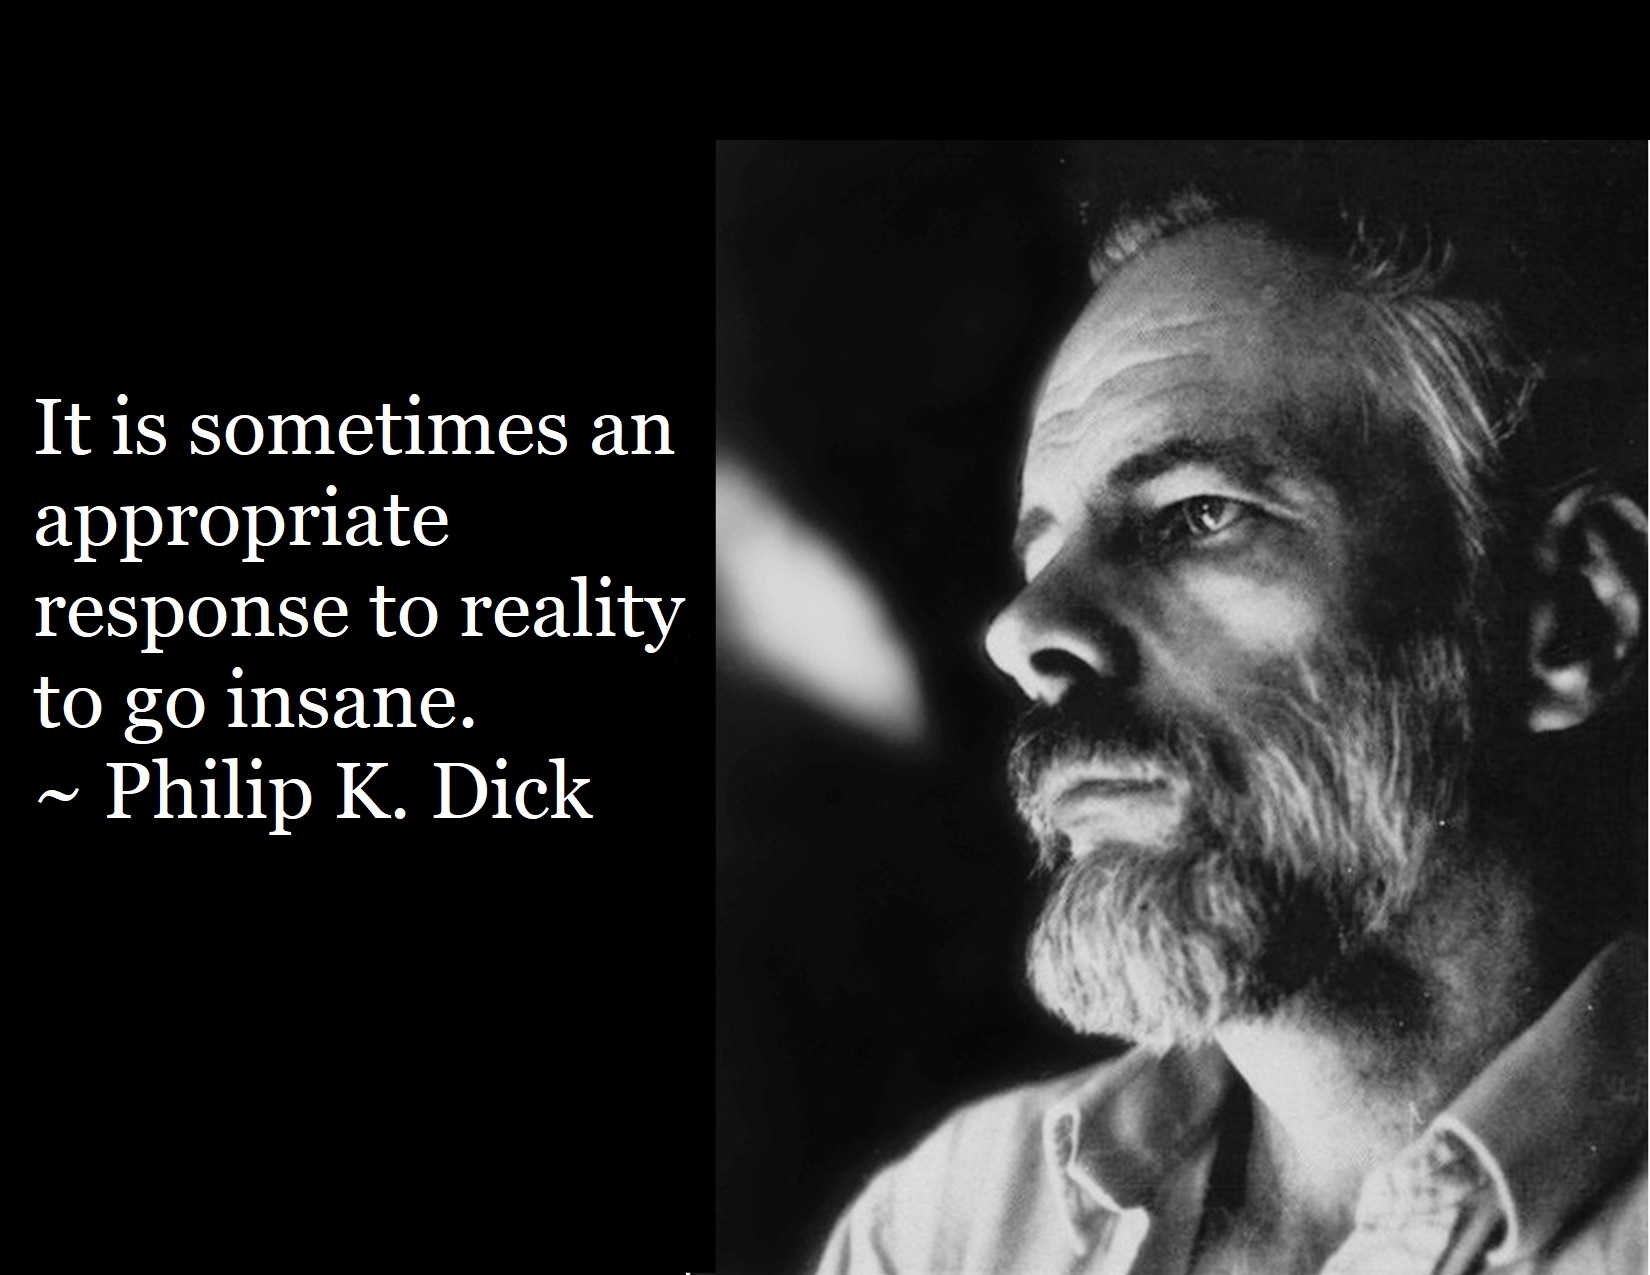 """It is sometimes an appropriate response to reality to go insane."" ― Philip K. Dick [1650*1275]"